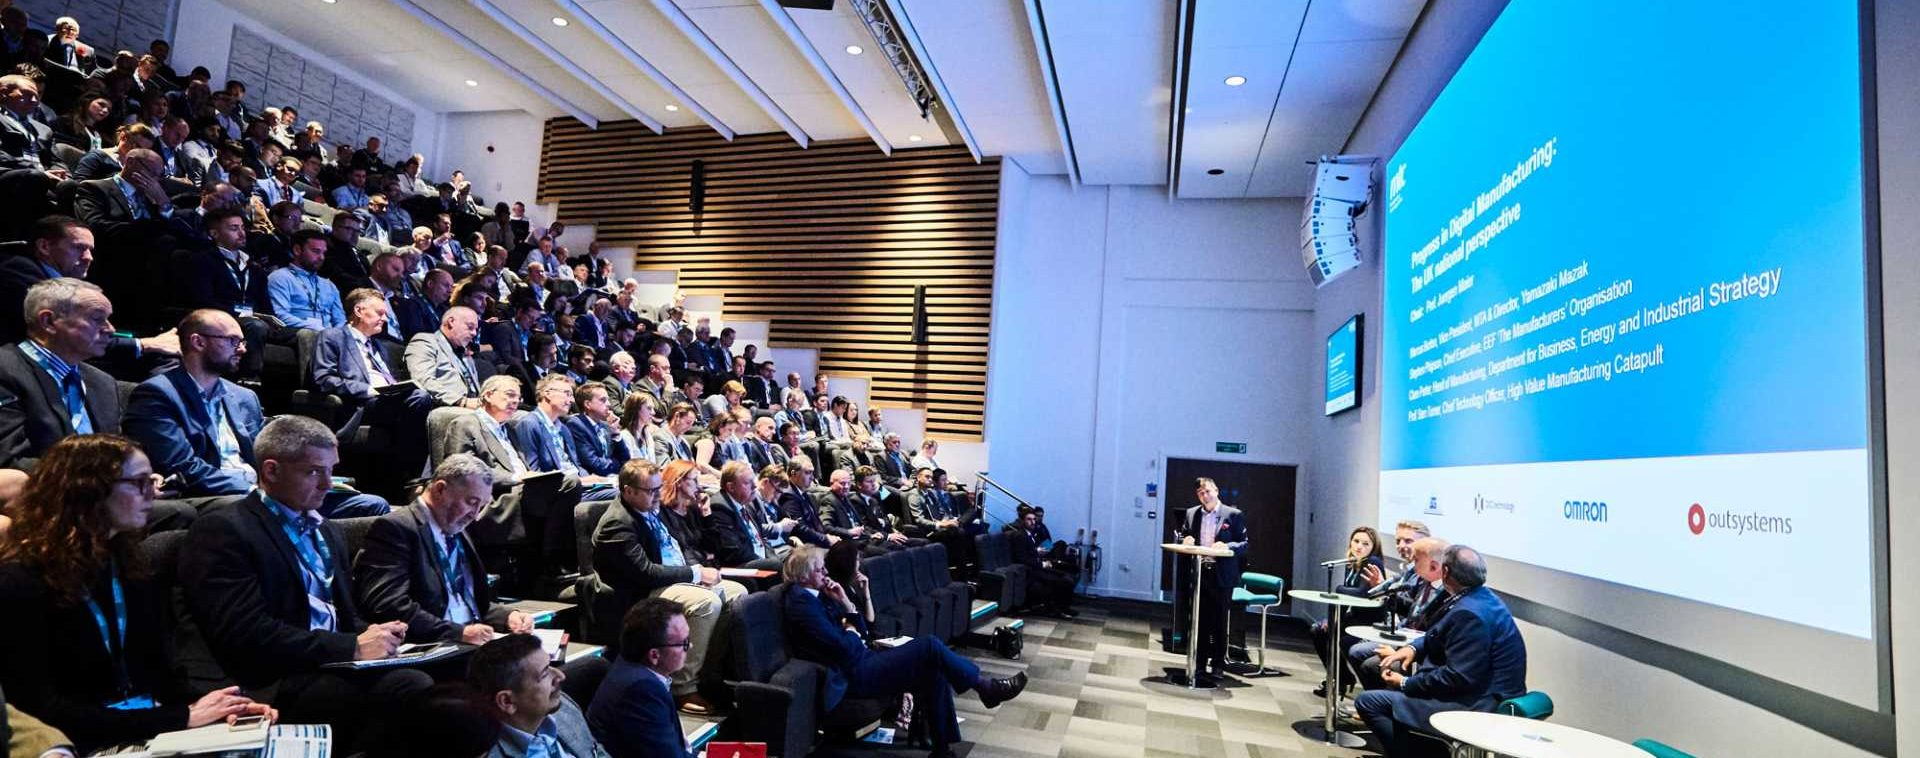 Making digital a reality - Digitalising Manufacturing Conference 2019 - image courtesy of MTC